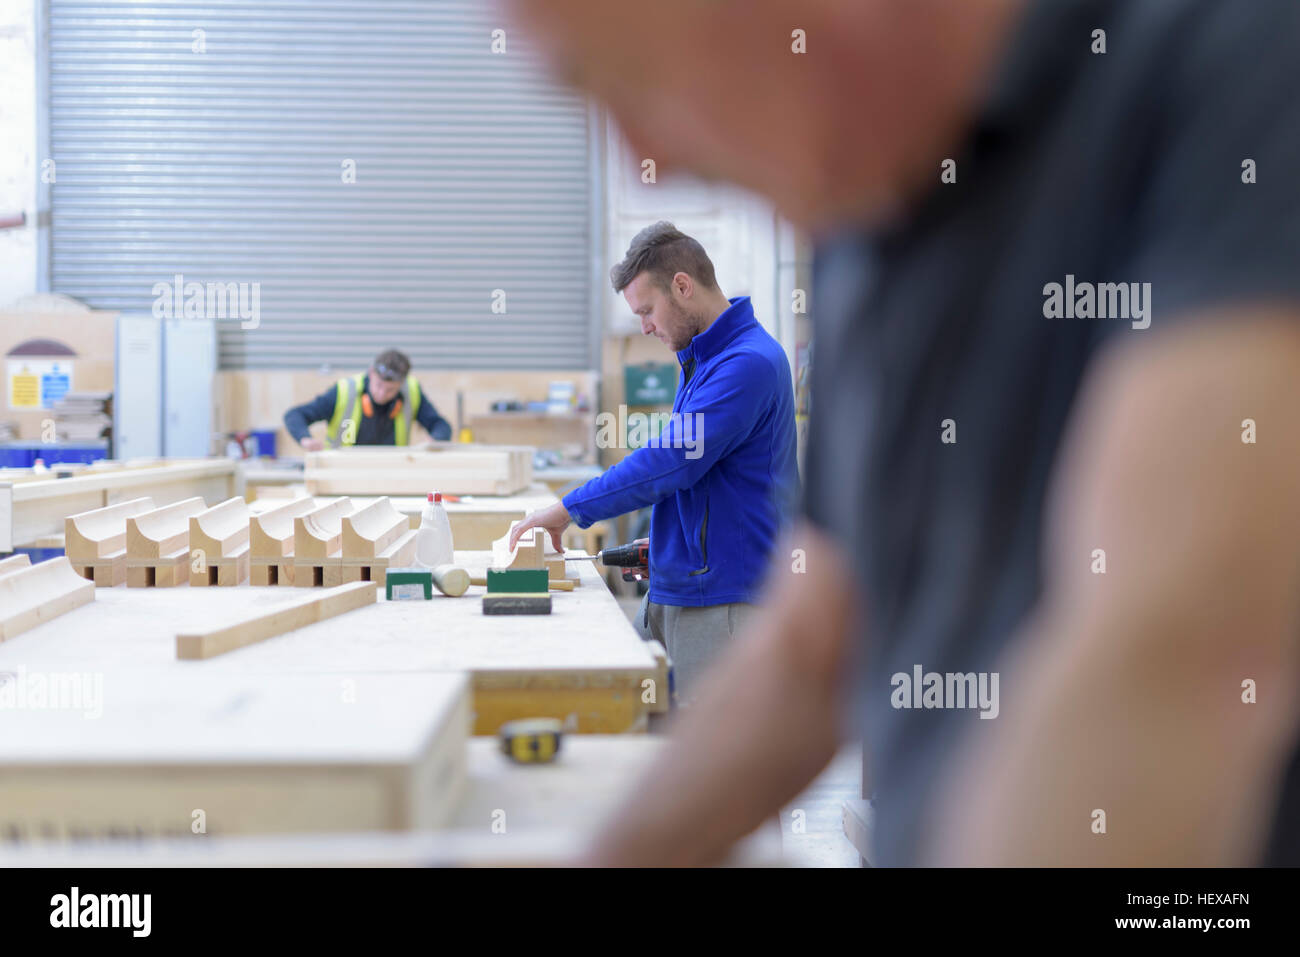 Woodworking in architectural stone factory - Stock Image